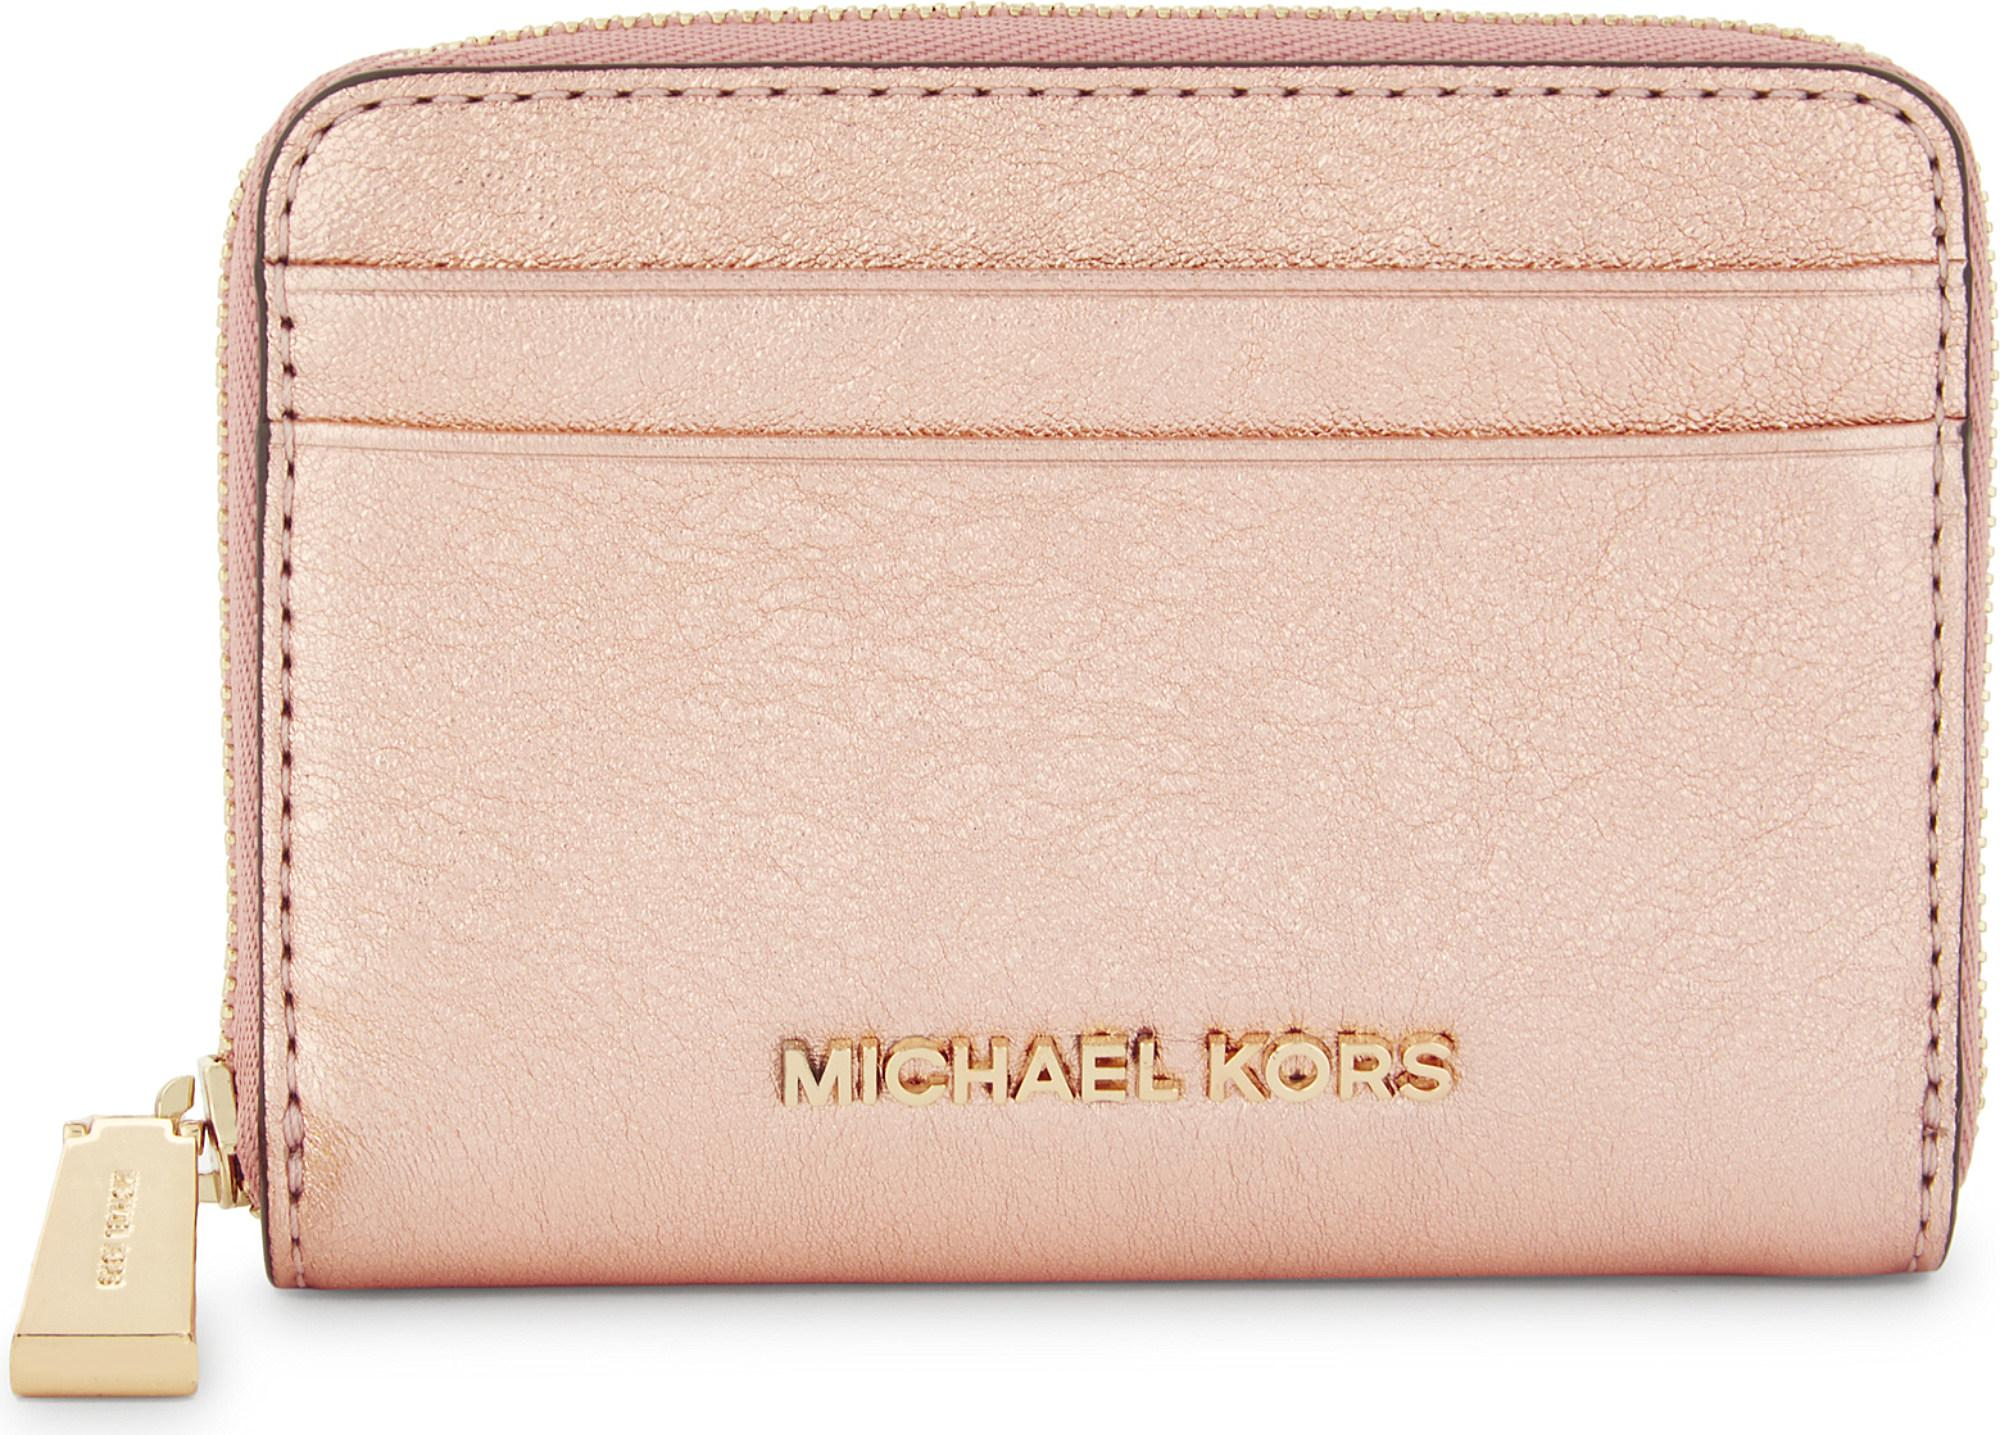 373c0ca6 MICHAEL Michael Kors Crackled Leather Zip-around Card Case in Pink ...